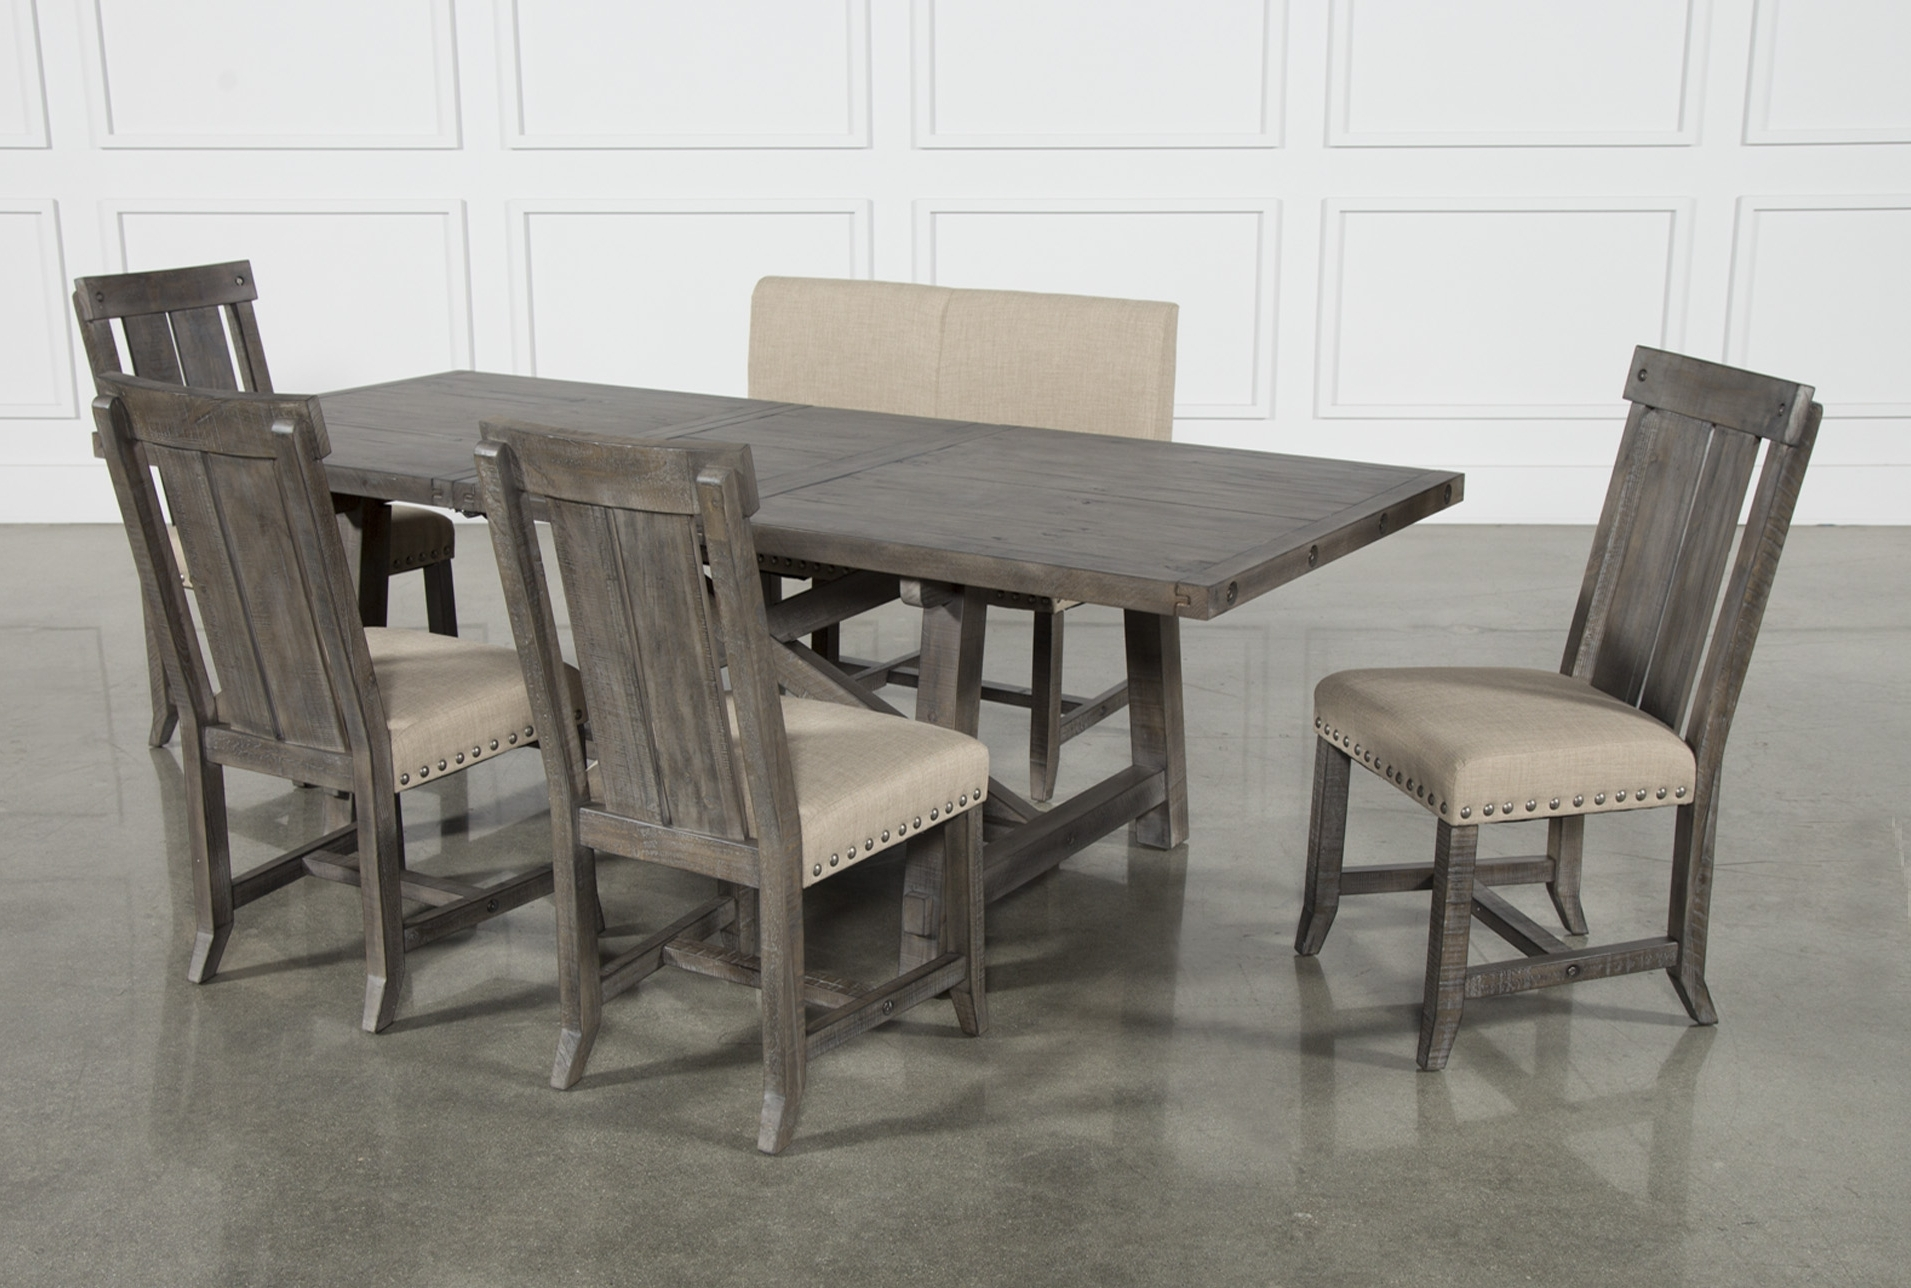 Besteneer Rectangular Dining Room Table Dark Gray – Signat With Regard To Most Recently Released Jaxon Grey Round Extension Dining Tables (View 14 of 25)